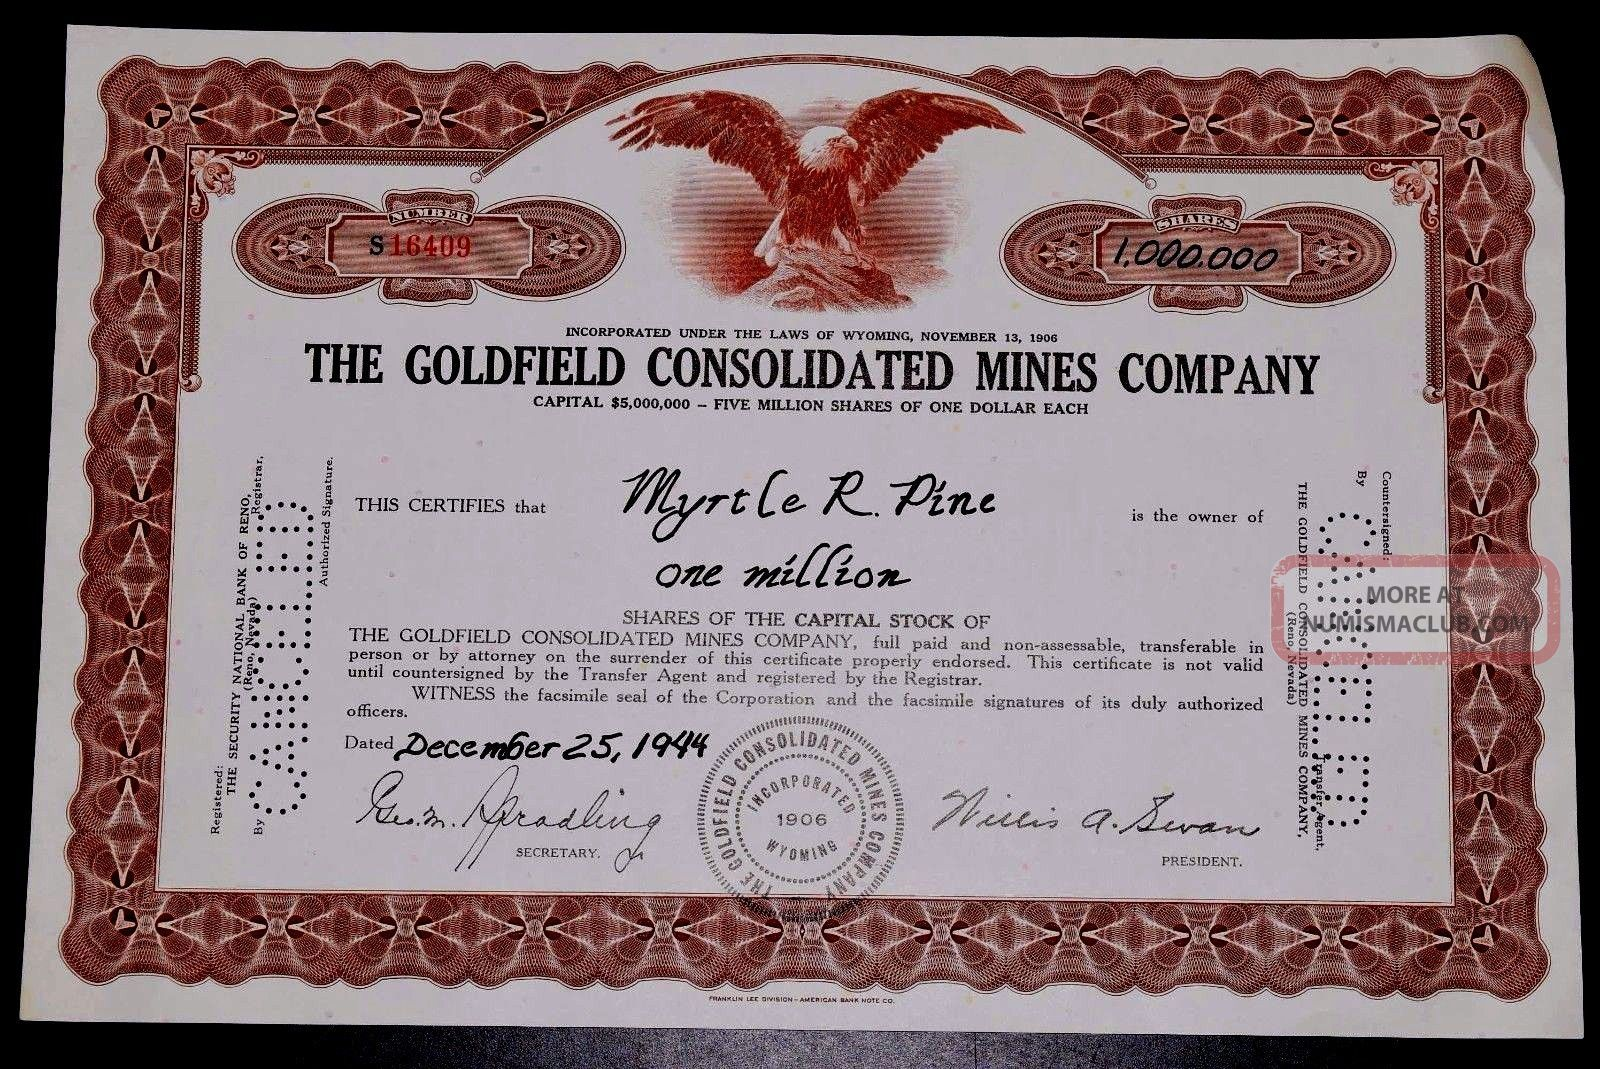 One Million Shares Of Capital Stocks Of The Goldfield Consolidation Mines 1944 Stocks & Bonds, Scripophily photo